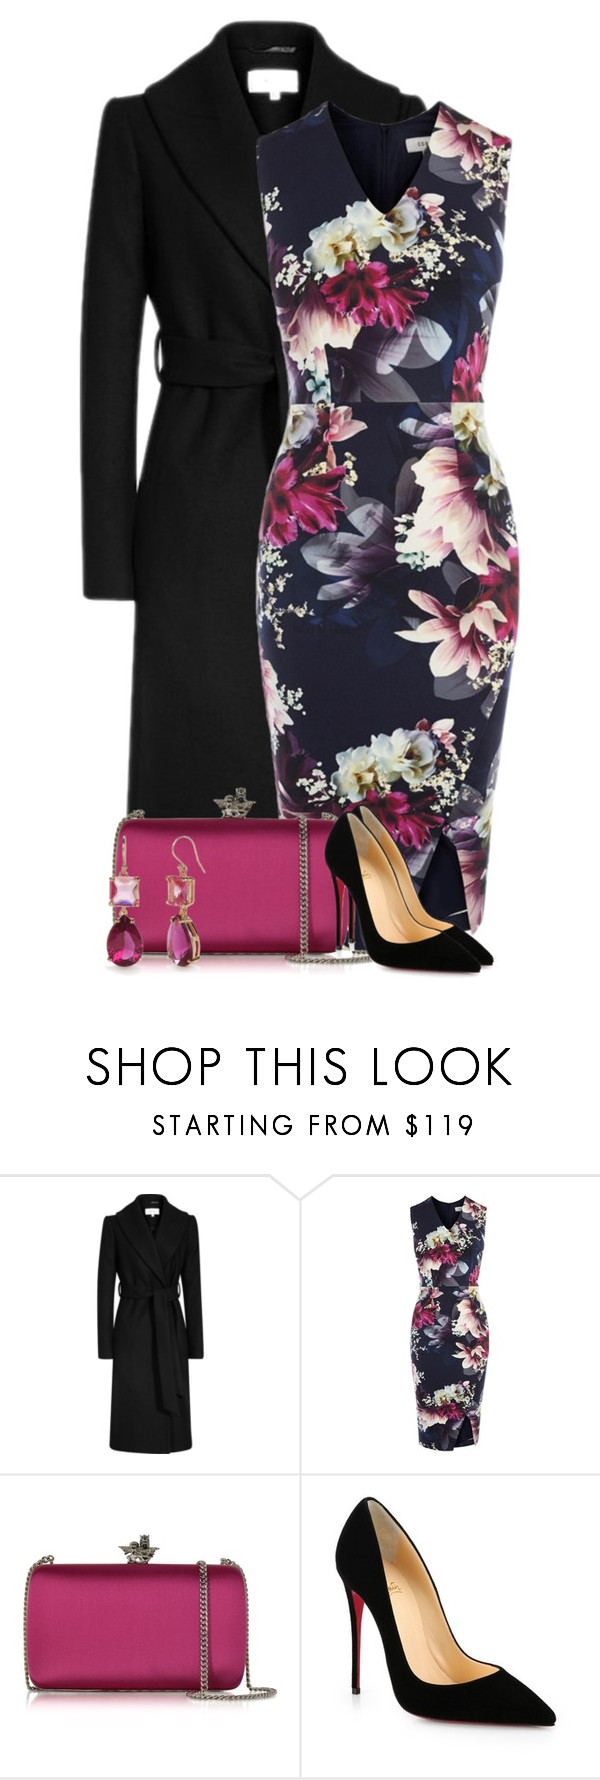 """Dark Florals"" by cassandra-cafone-wright ❤ liked on Polyvore featuring Coast, Roberto Cavalli, Christian Louboutin and Kate Spade"